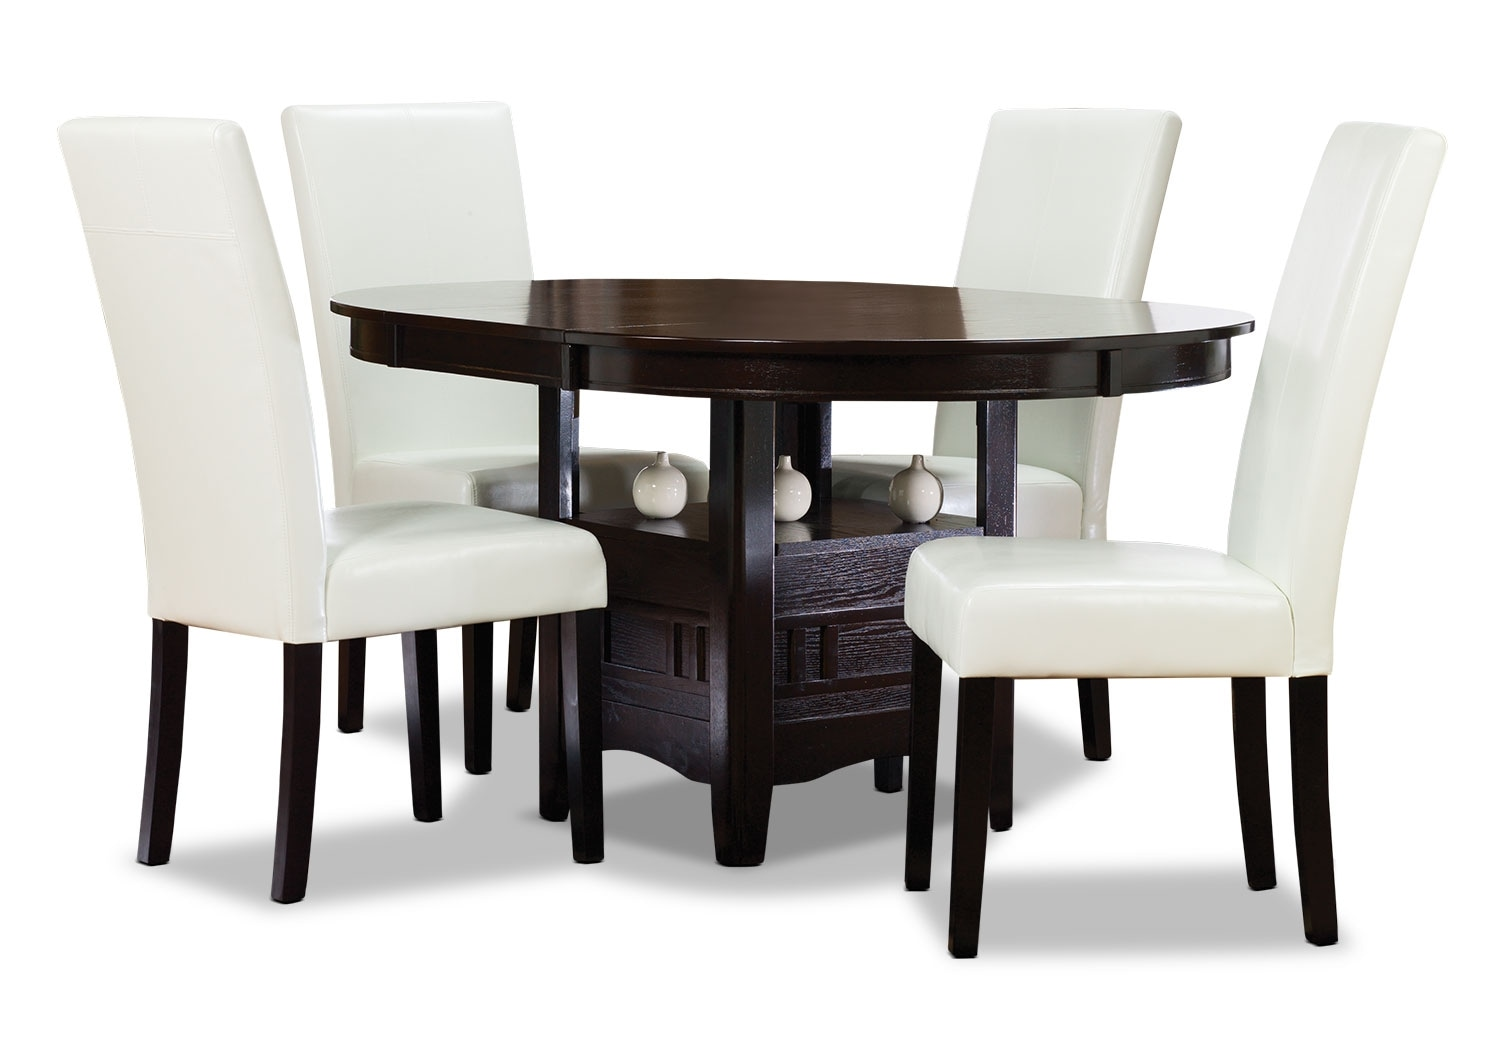 Dining Room Furniture - Dalton 5-Piece Chocolate Dining Package with White Chairs